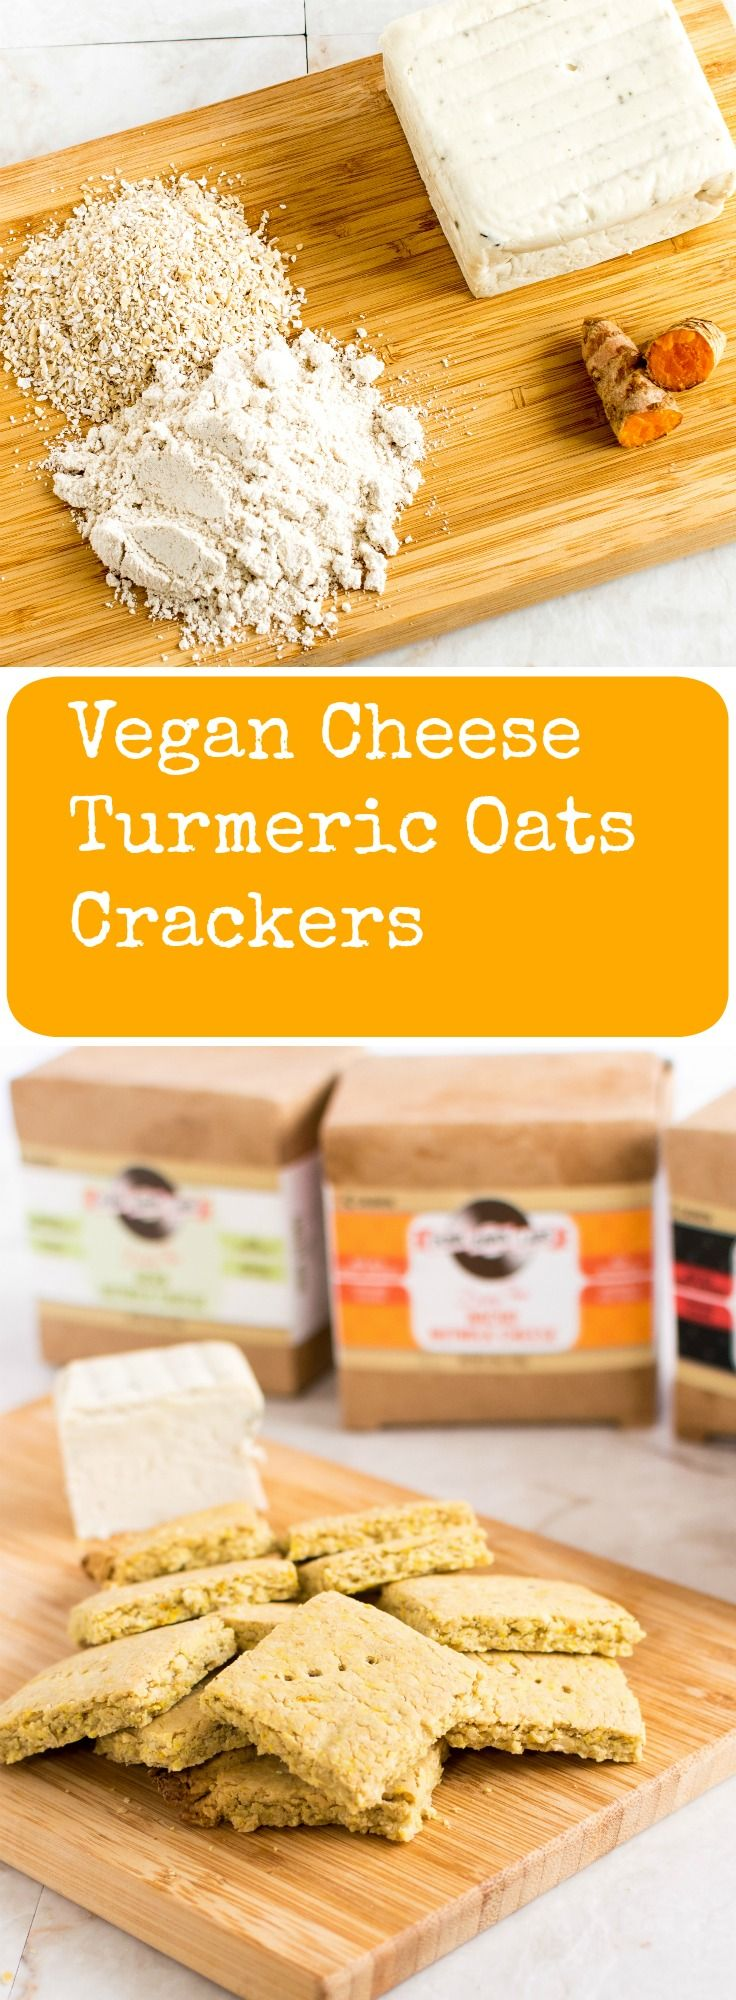 Vegan Cheese Turmeric Oats Crackers + GIVEAWAY! Enjoy baking these crispy crackers and enter the GIVEAWAY contest to win vegan flavored vegan cheese   kiipfit.com